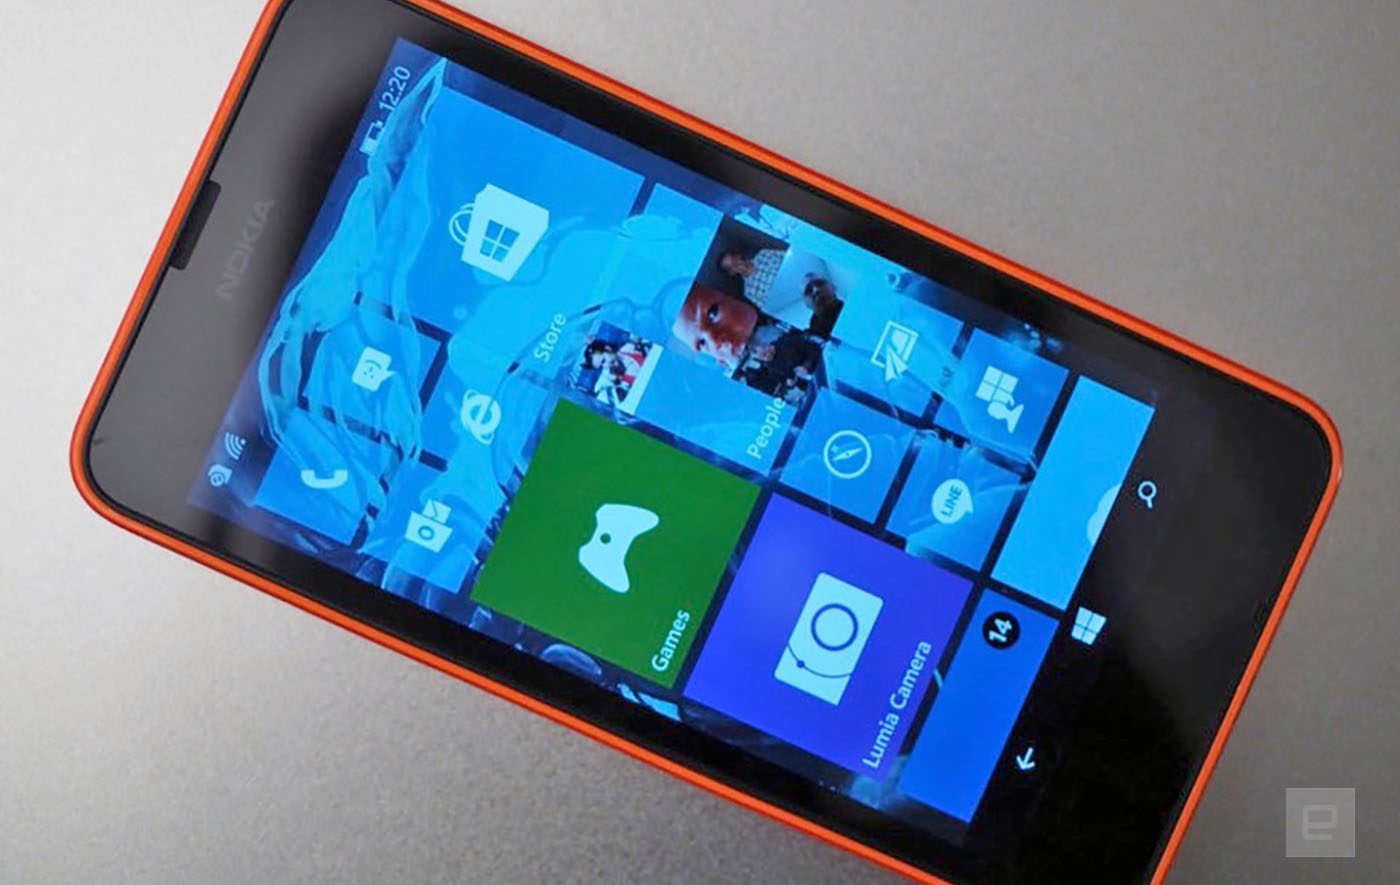 Microsofts preps Windows 10 updates for Lumia phones